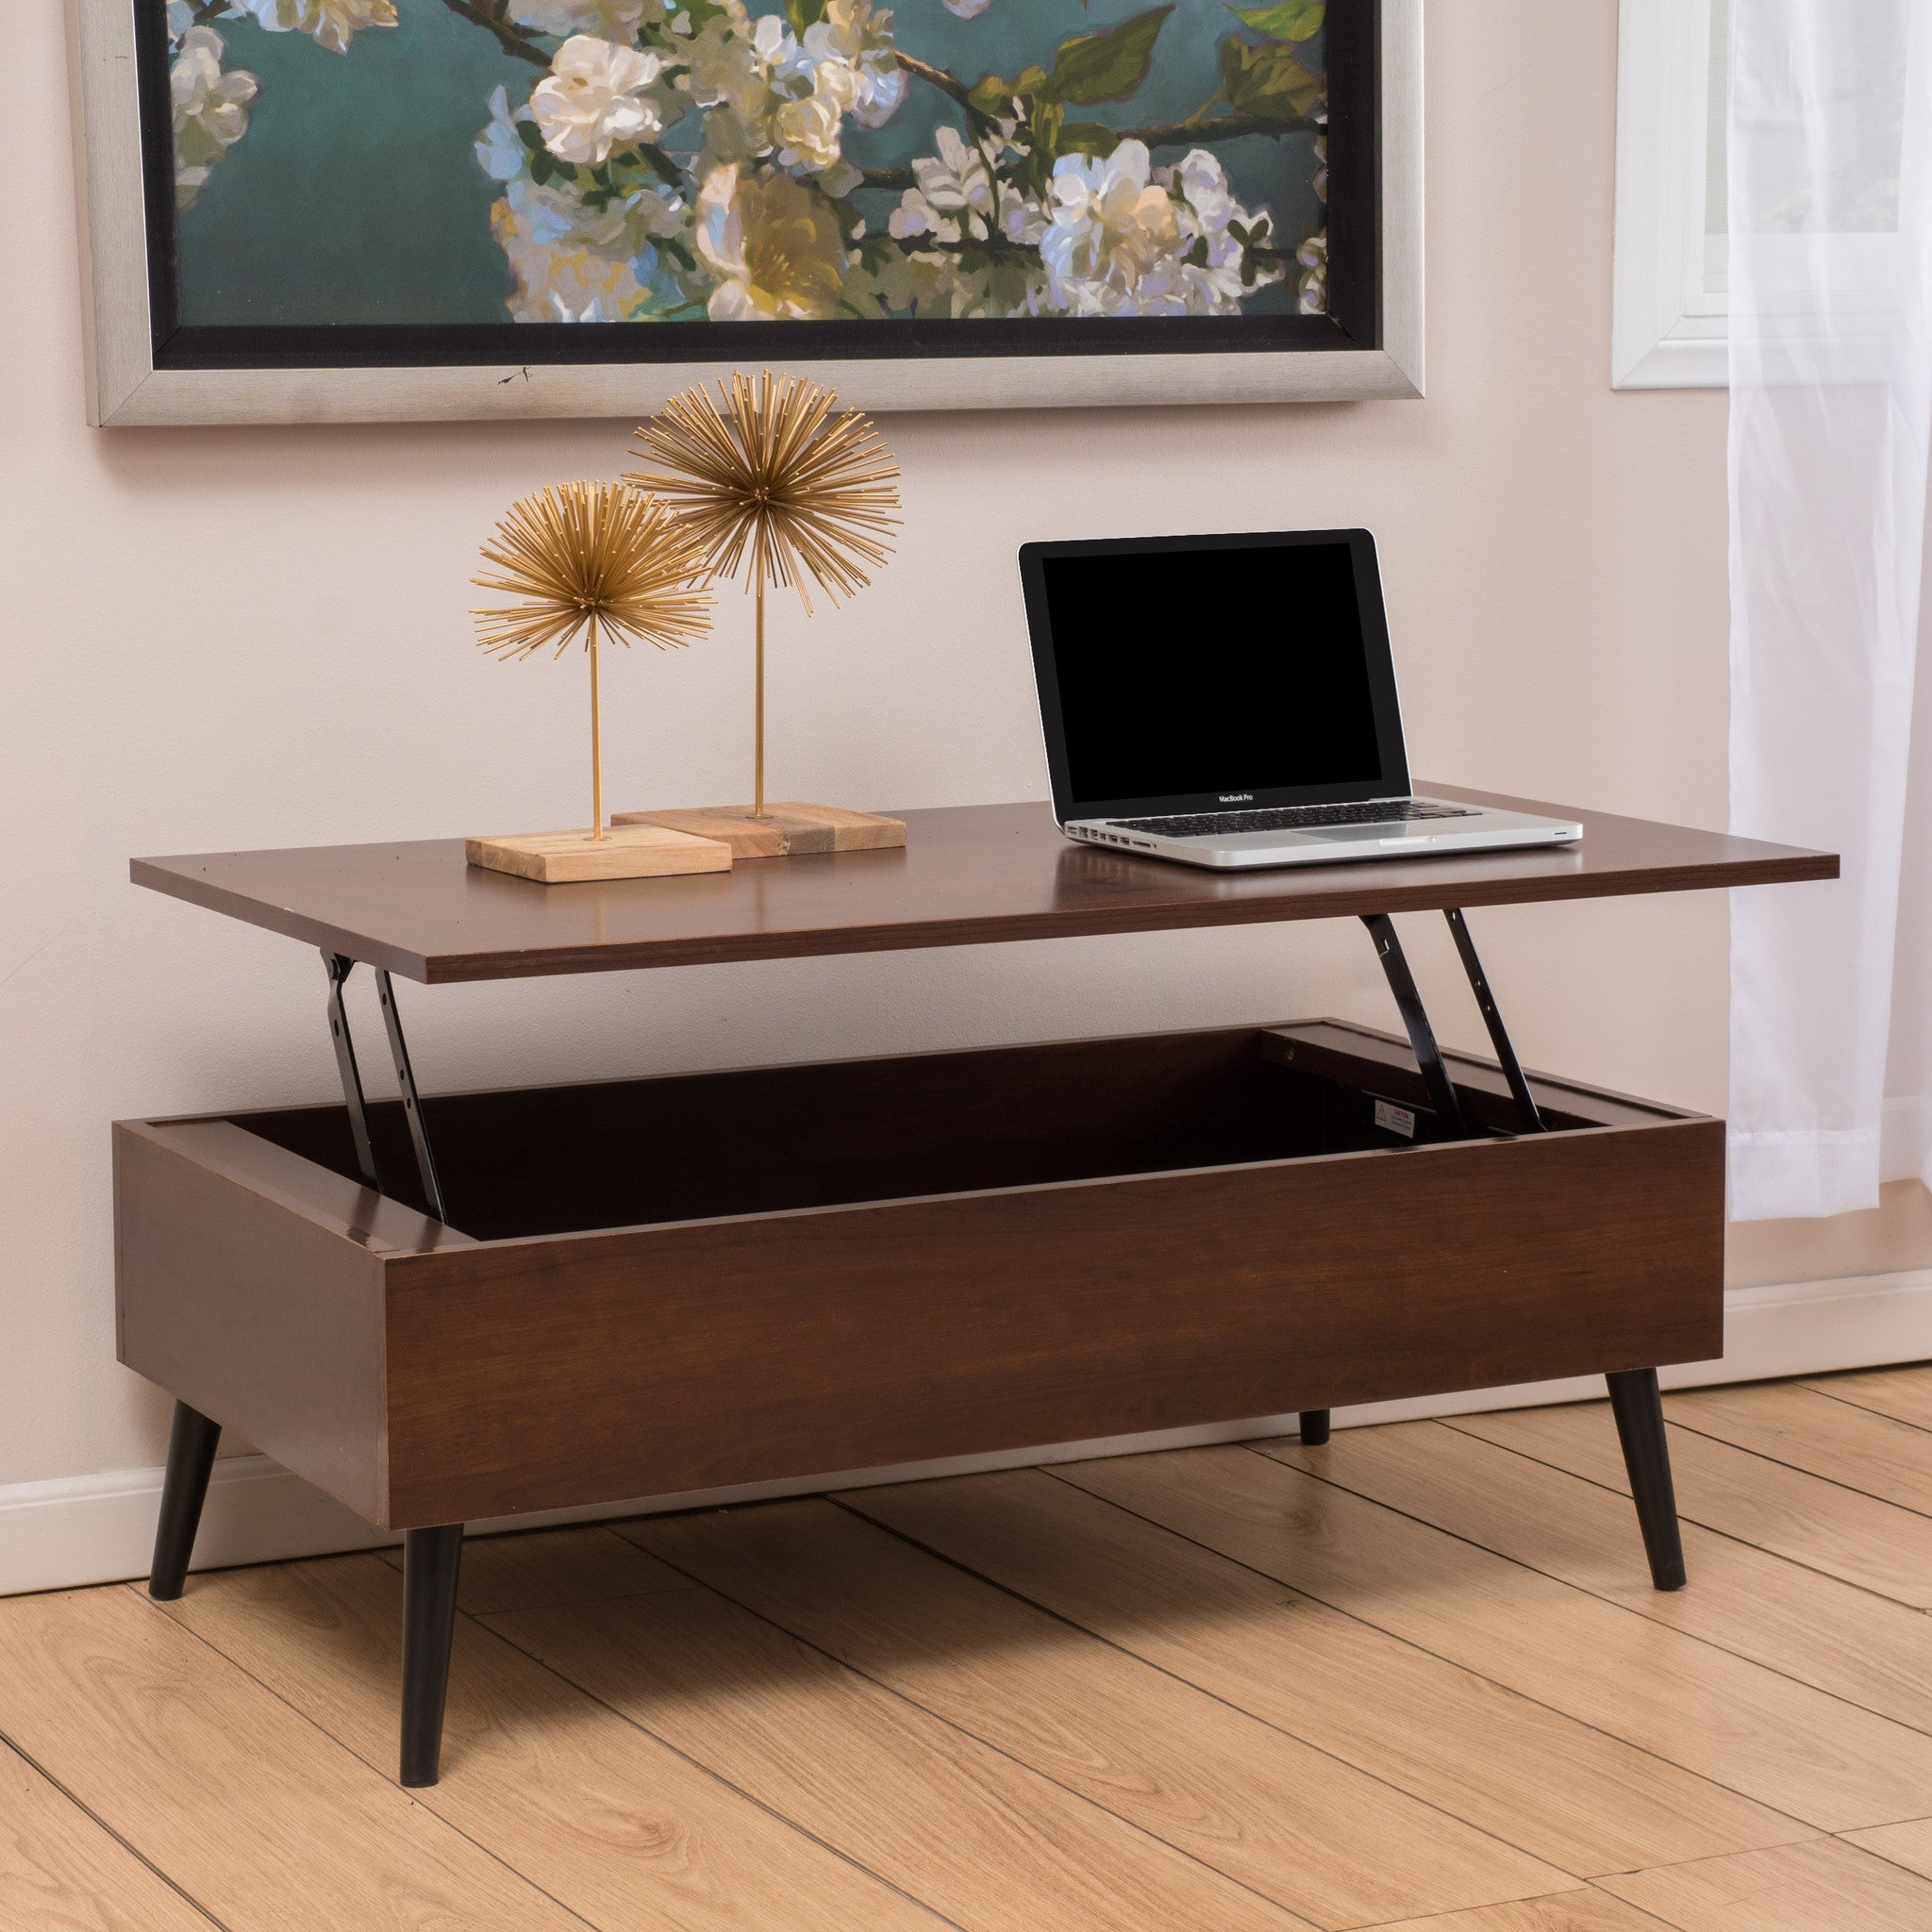 image tables s room table furniture change item to leon click coventry top espresso coffee product living lift